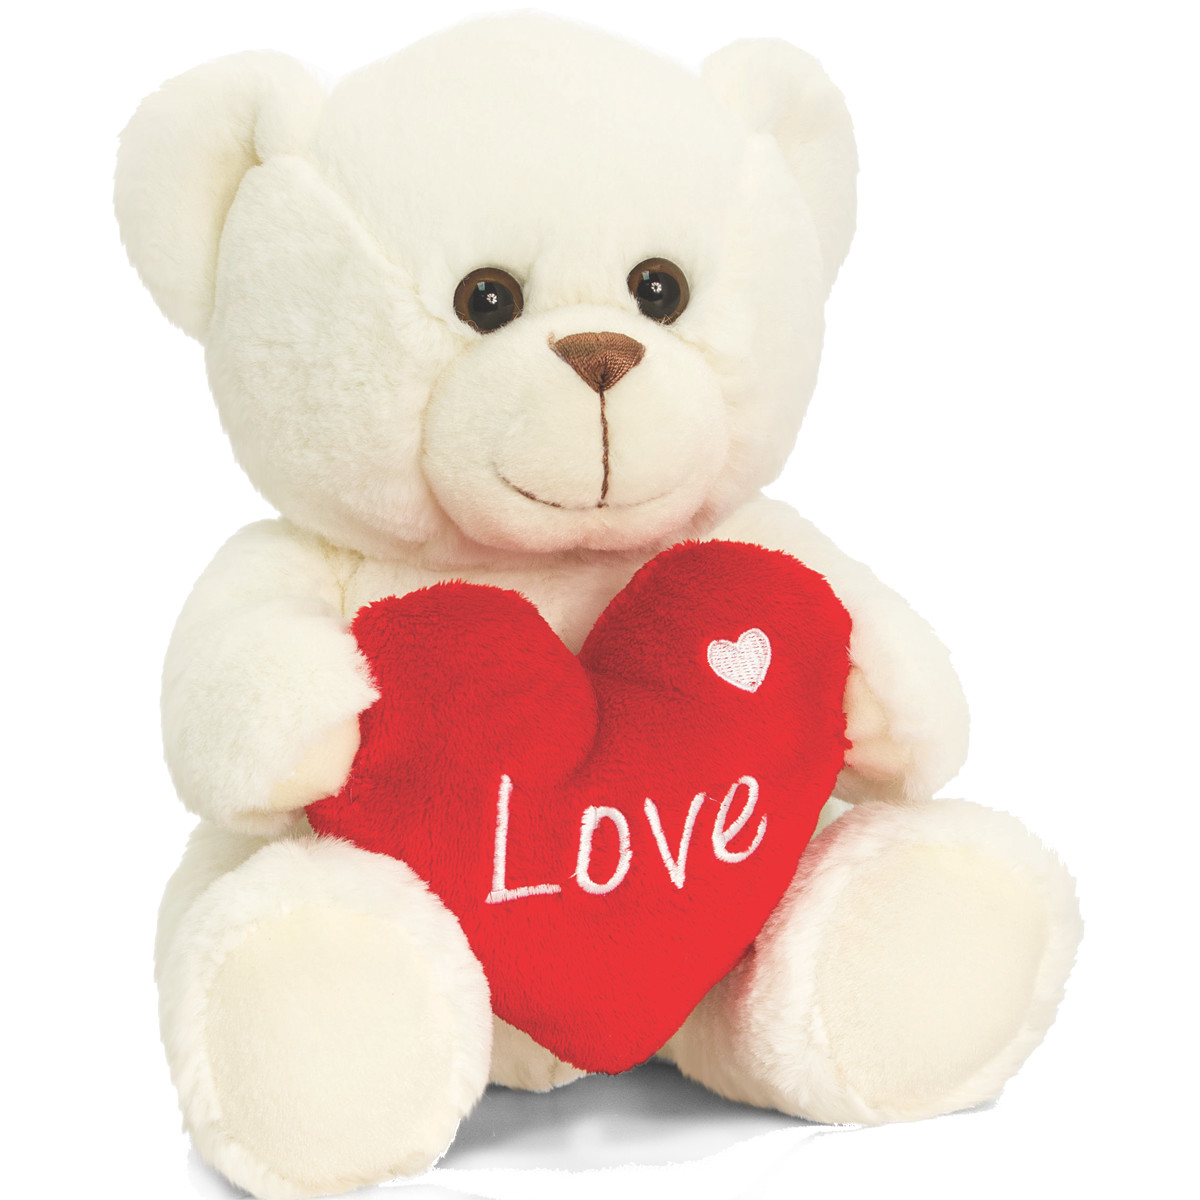 Love Quotes With Teddy Bear Images: Teddy With LOVE, Lakwimana